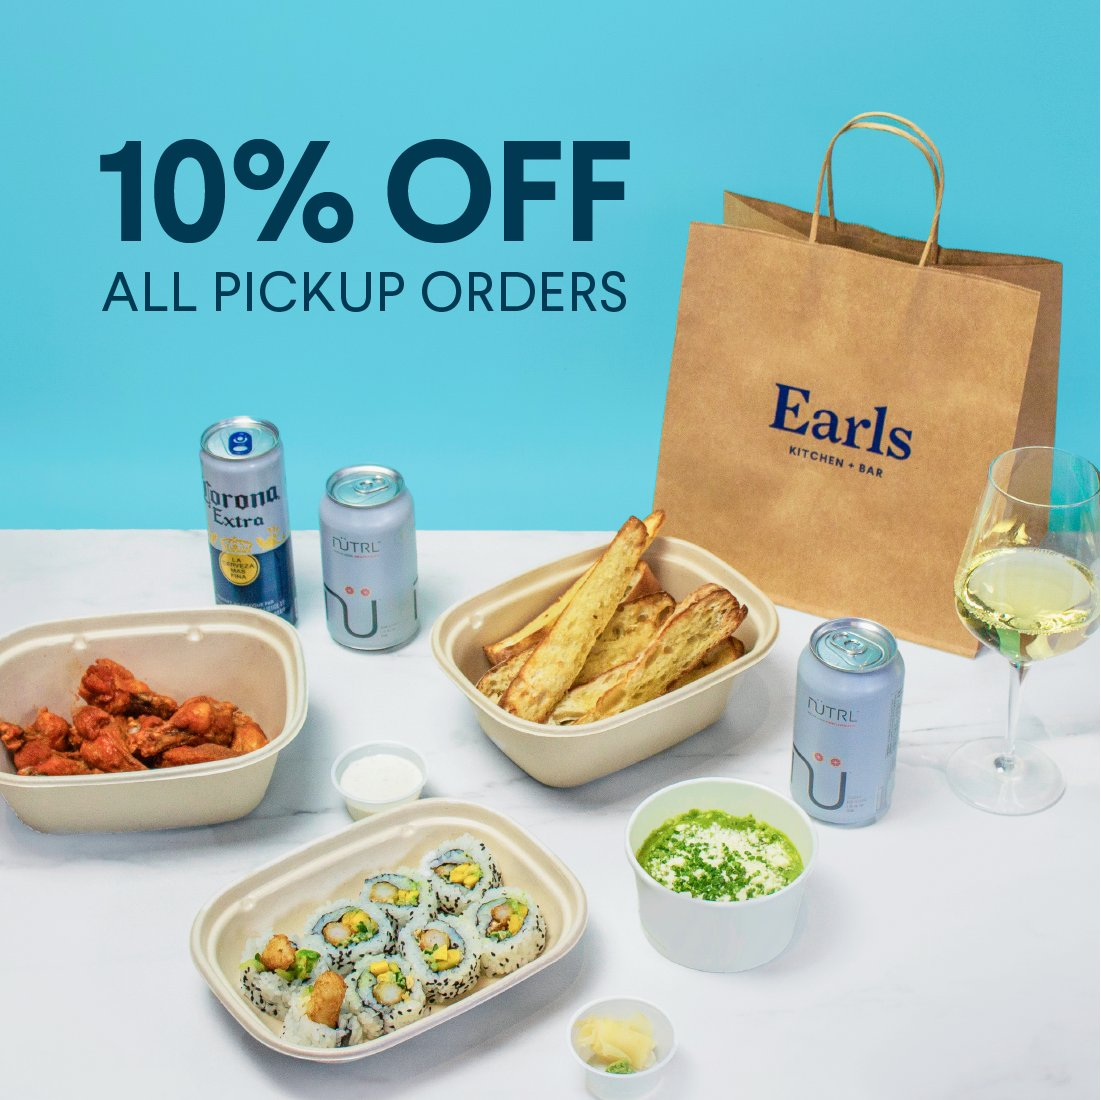 SAVE ON YOUR FAVES – All you need to do is order for pickup online and you'll automatically get 10% off your order at checkout! Easy, right?   Ready to eat? Visit https://t.co/Afq9ZTu88Y to start your order now.  #EarlsOnTheGo #Pickup #Takeaway https://t.co/pjT1d1yx0b